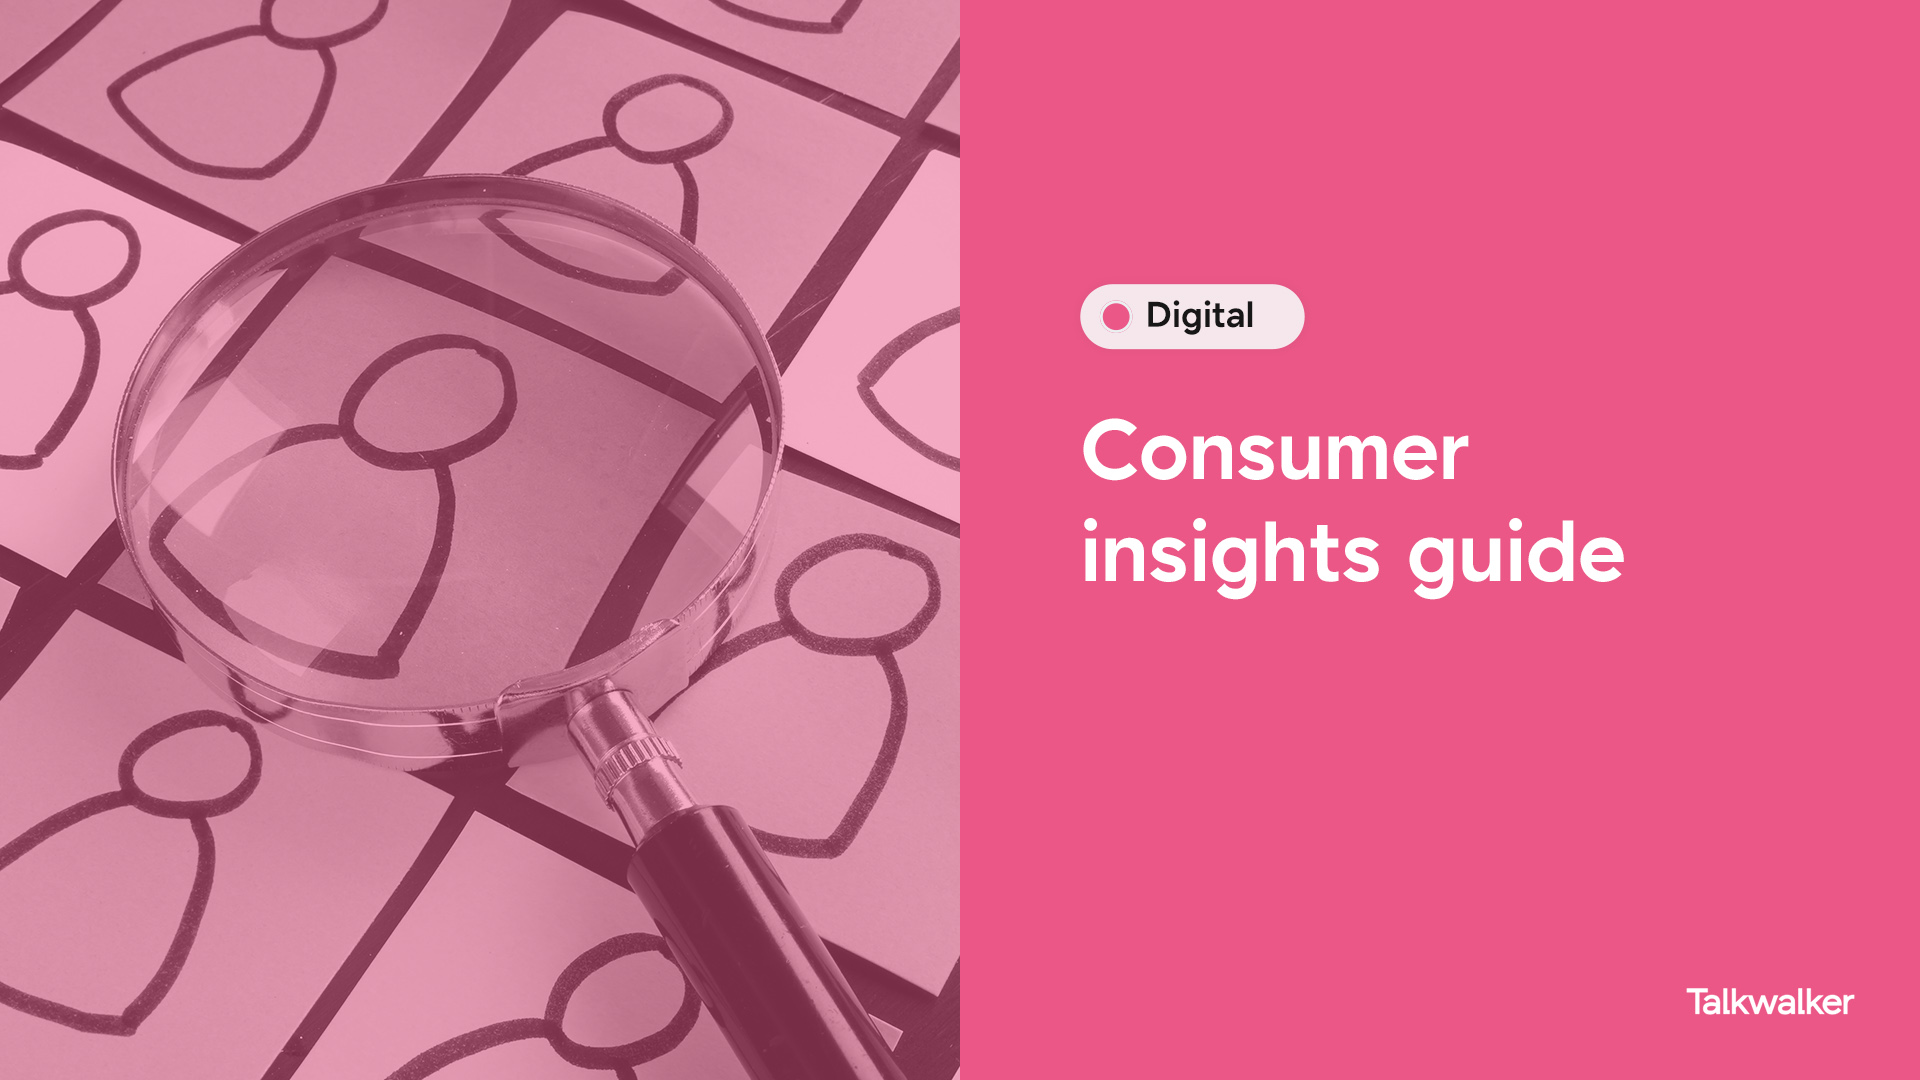 Title - Consumer insights guide. Category - Digital. Left shows a magnifying glass over crudely drawn icons to represent consumers.